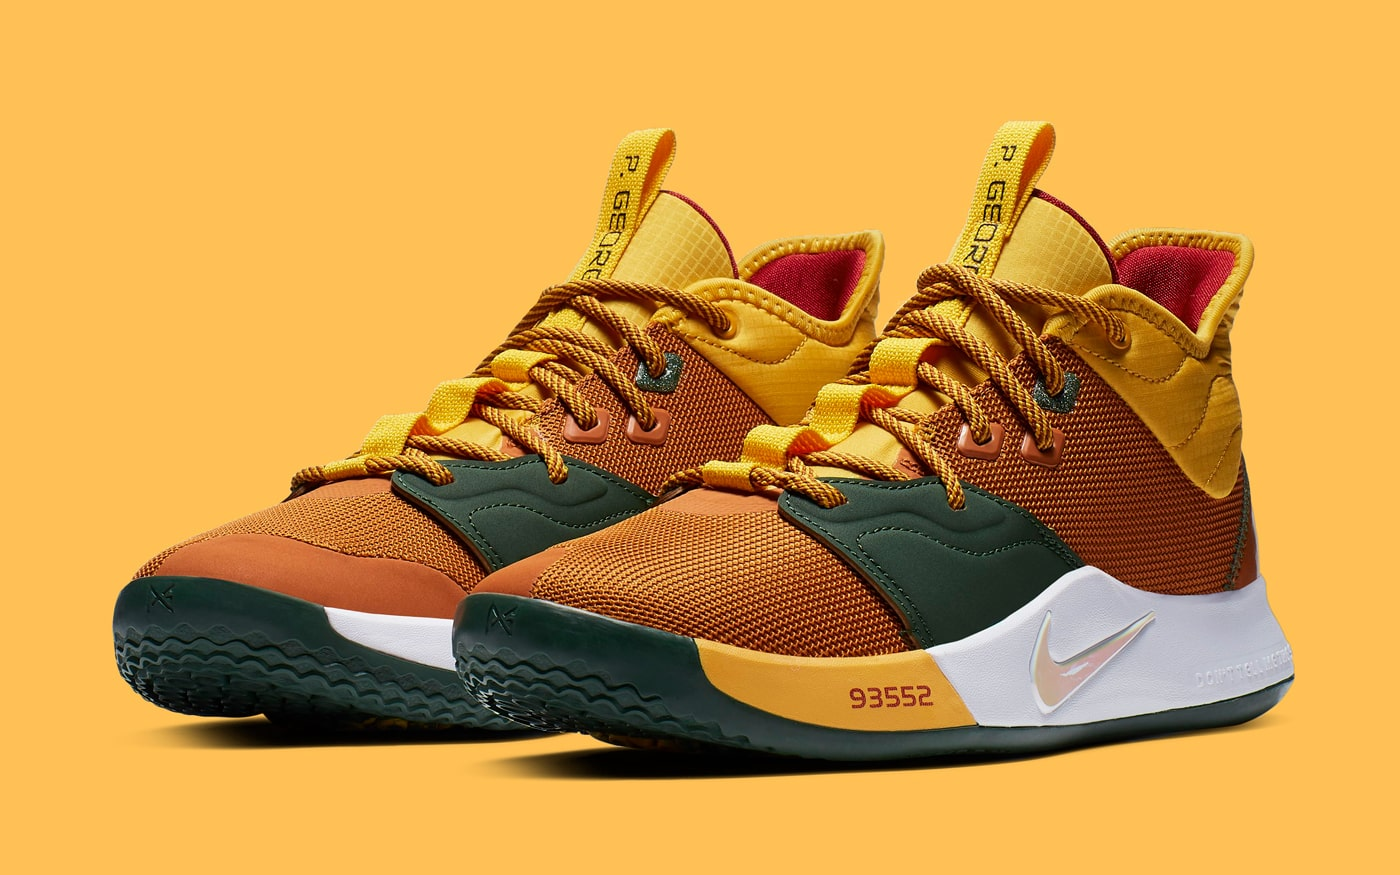 """buy online 7d9a2 c2ef8 Where to Buy Paul George's ACG-Inspired Nike PG3 """"All-Star ..."""